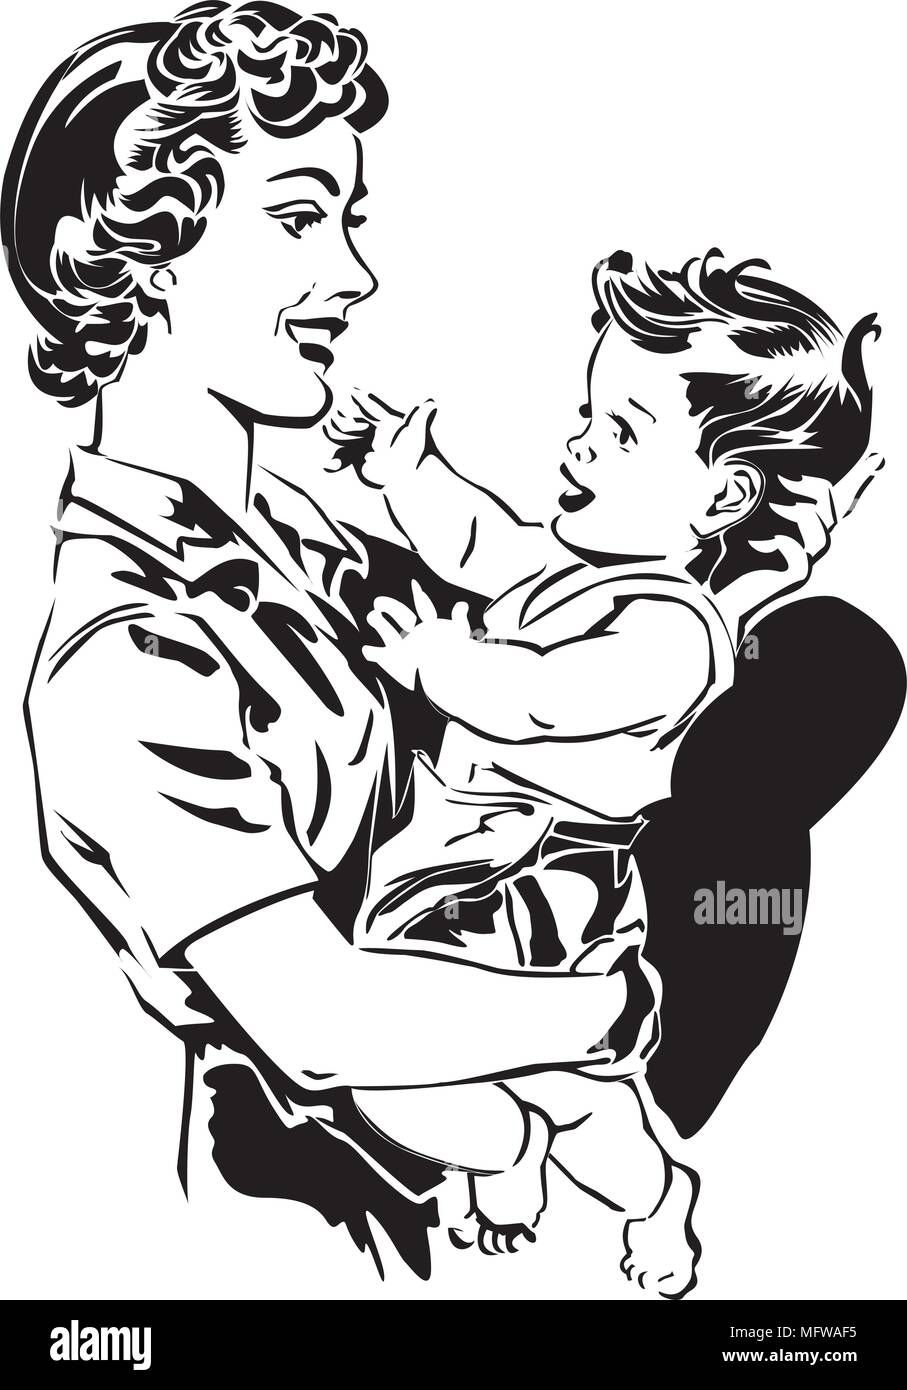 Mom Holding Baby Retro Clipart Illustration Stock Vector Image Art Alamy